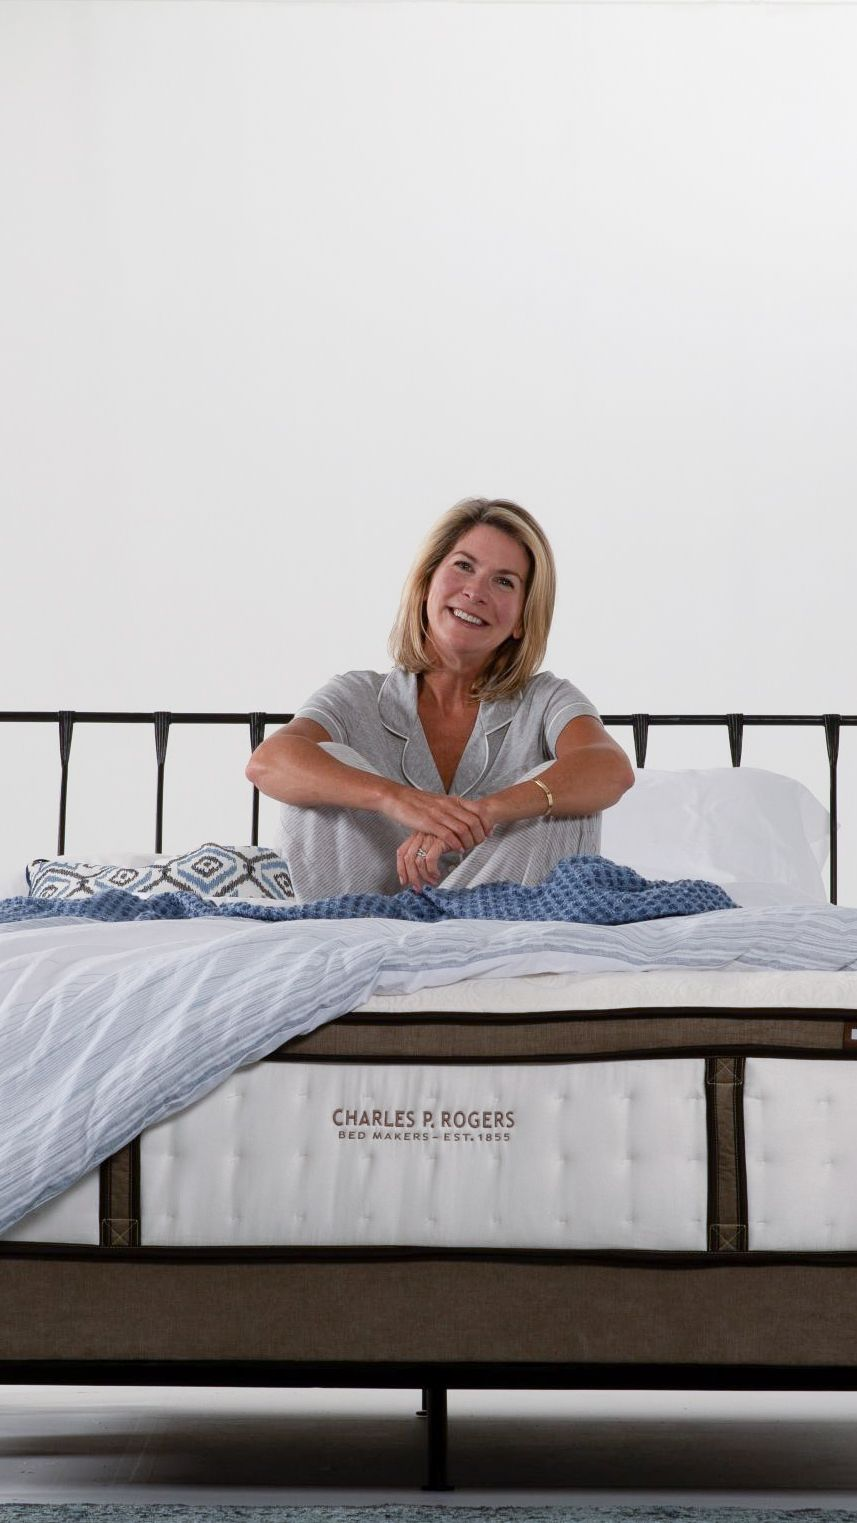 Charles P. Rogers has been named the top mattress brand